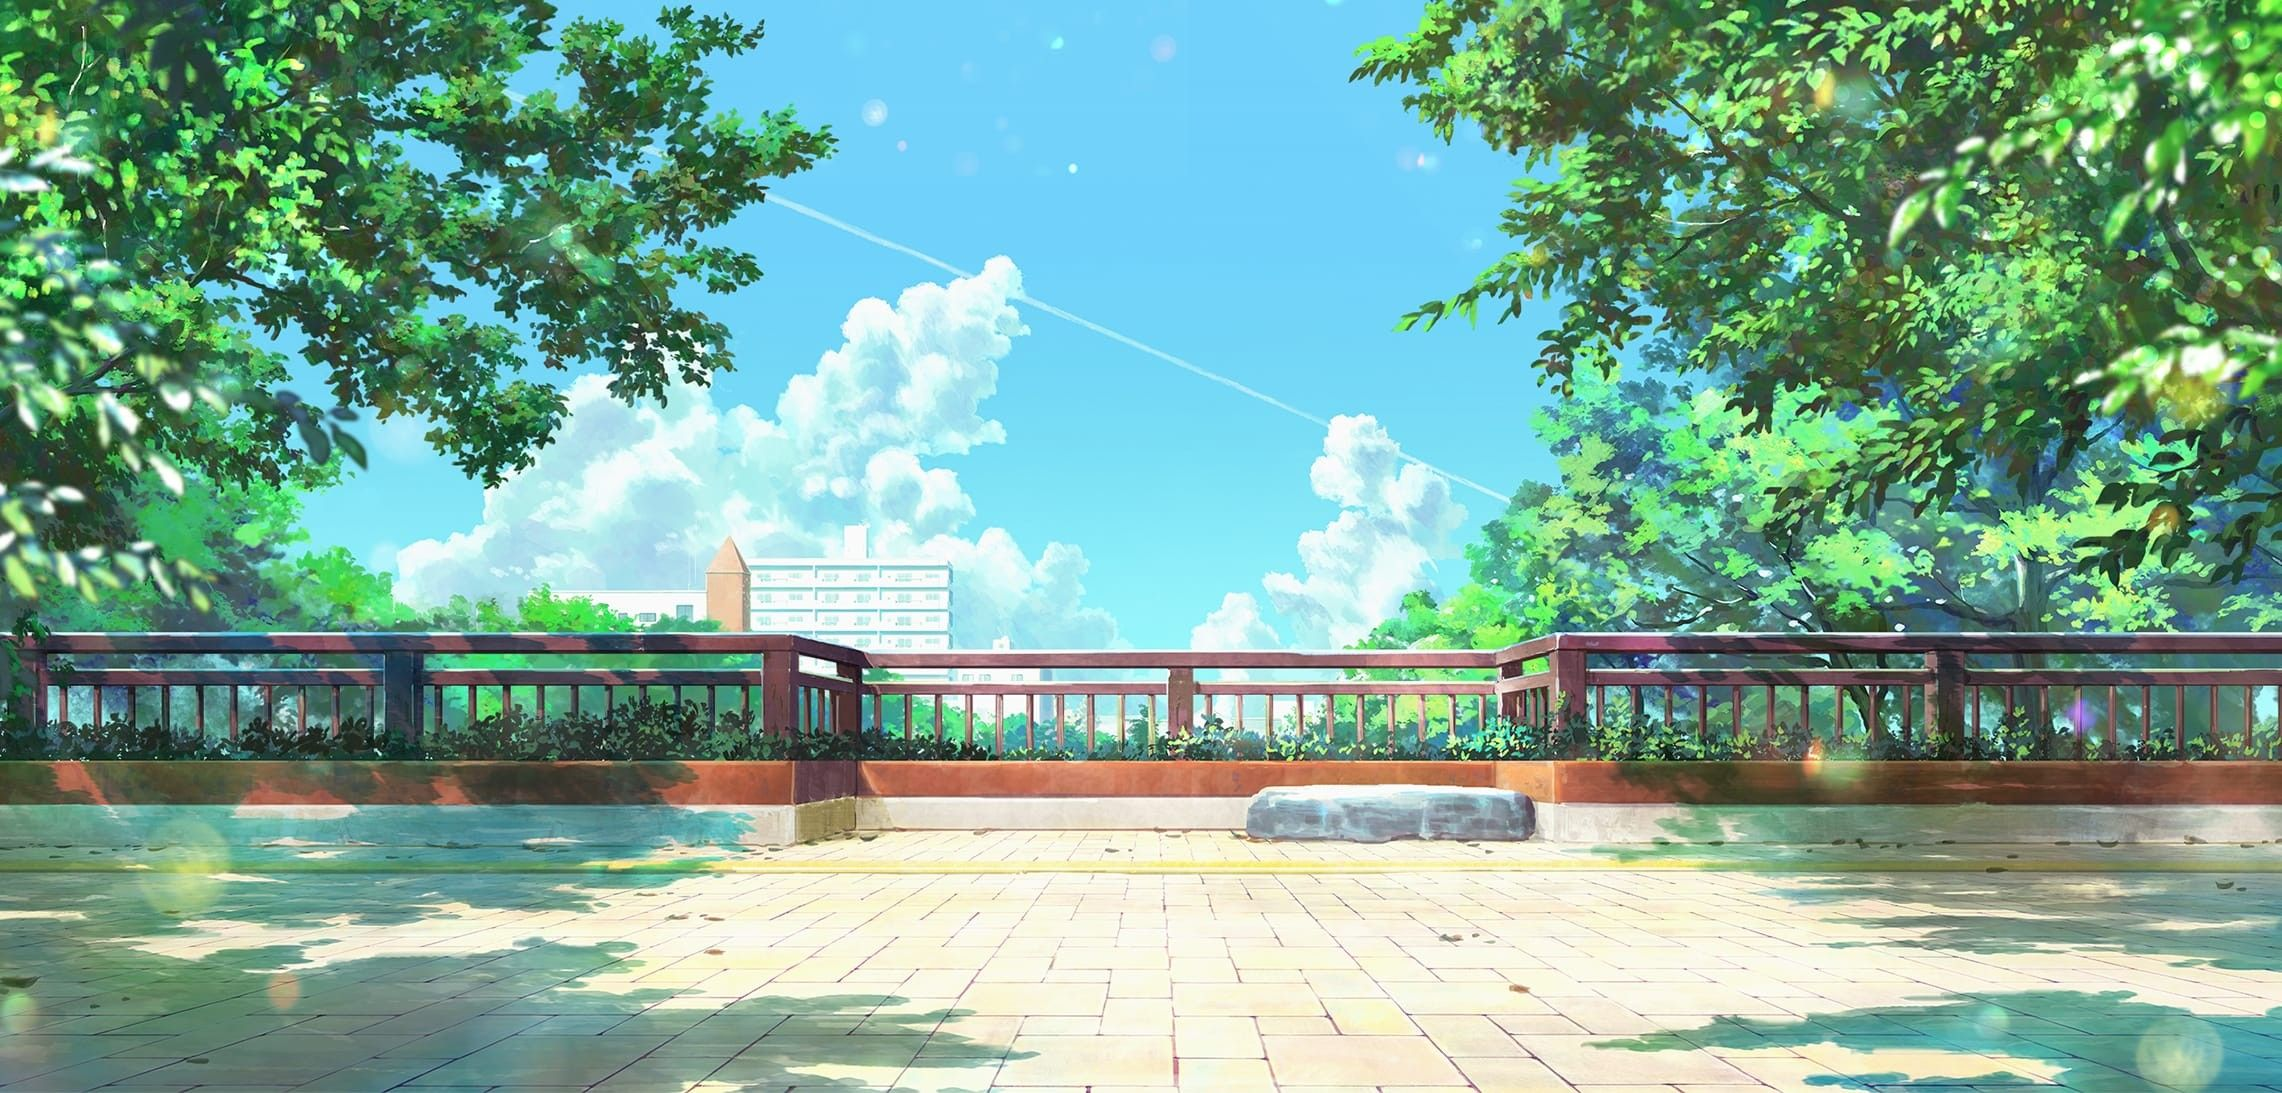 Pin by Anime World(for anime fans) on silent voice (With